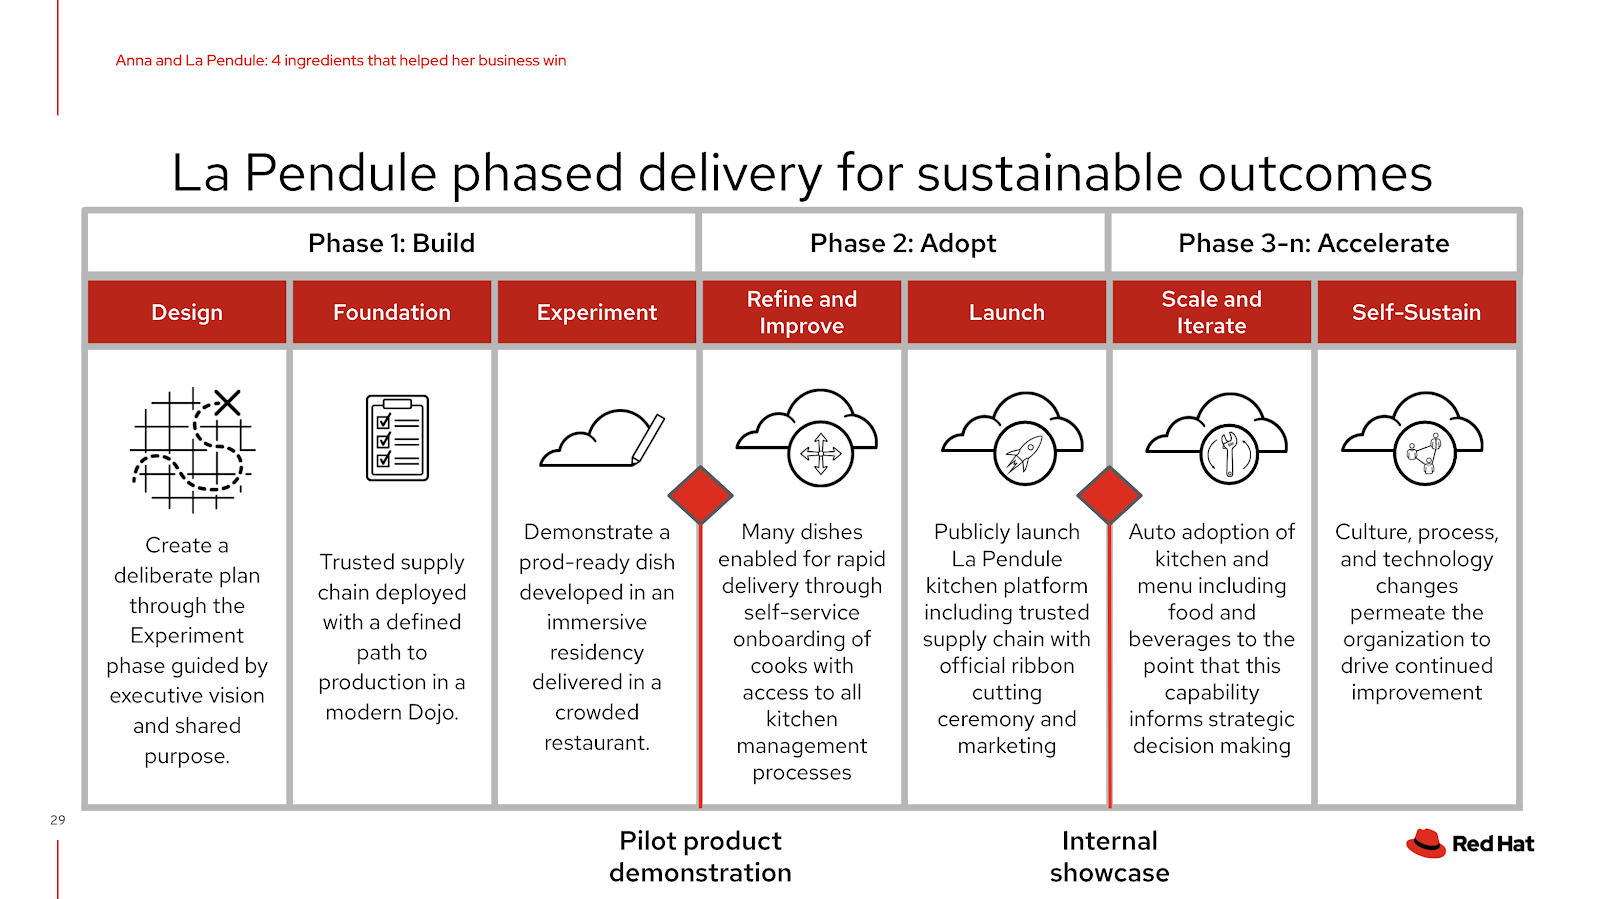 Phased delivery for sustainable outcomes.